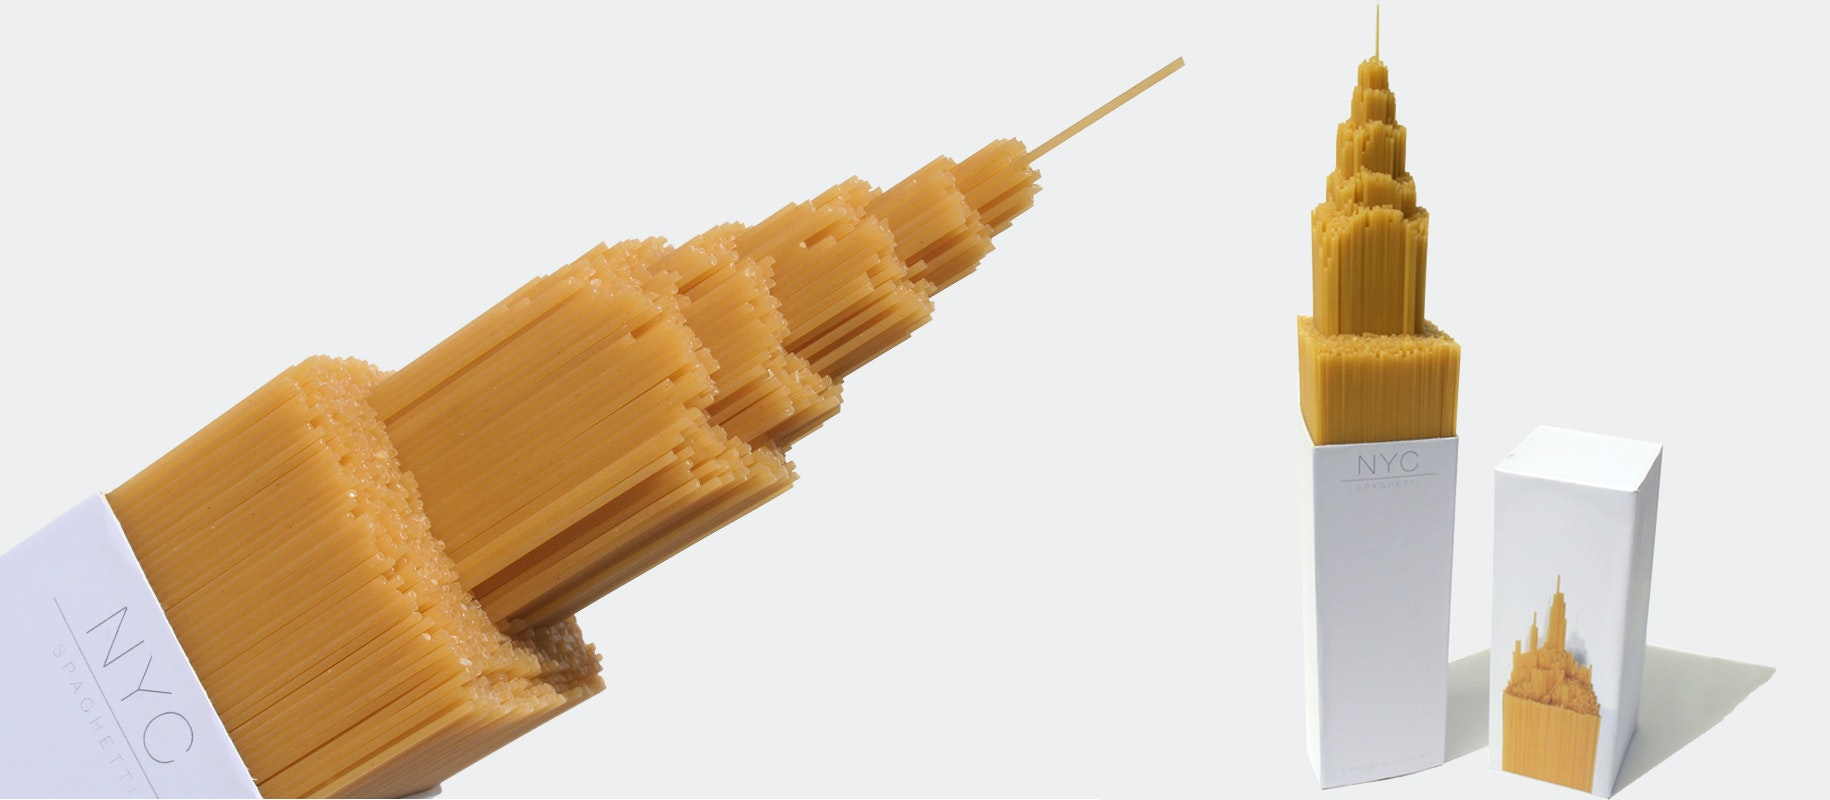 NYC Spaghetti product packaging